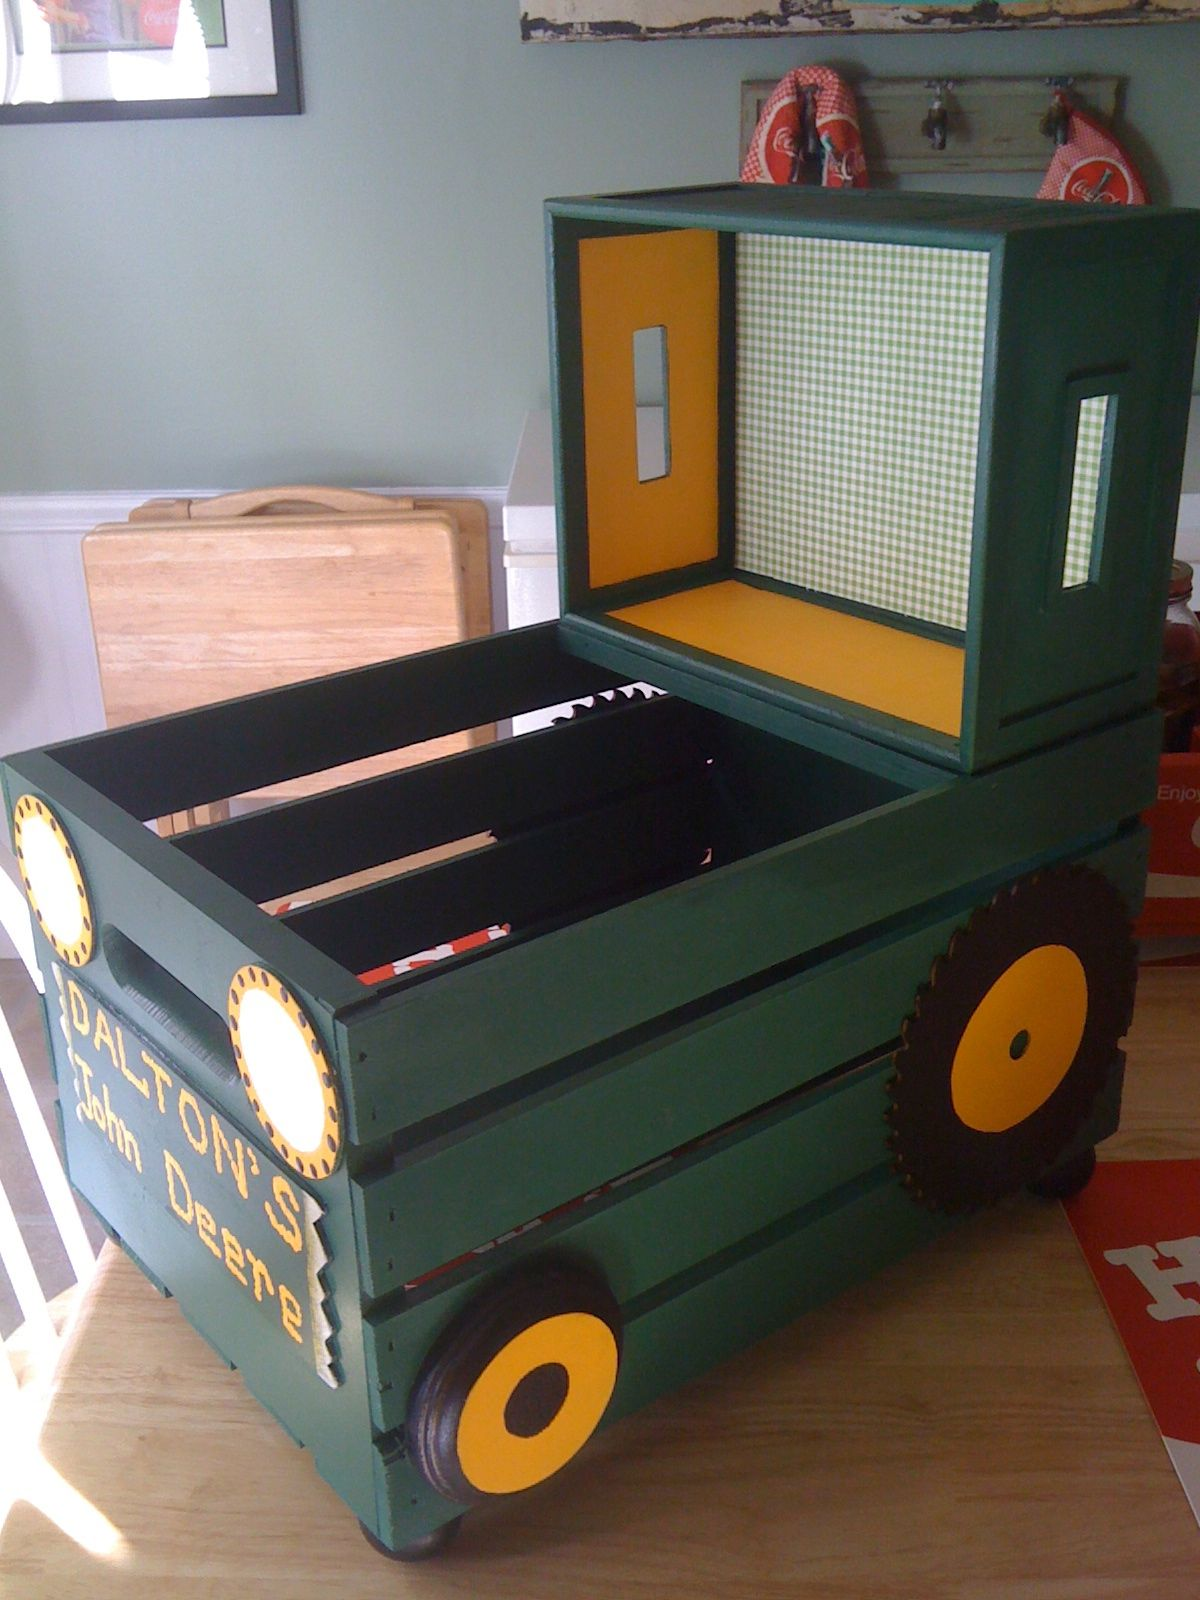 I Made This Tractor Out Of A Crate And A Wooden Box For The Cab It Was A Baby Shower Gift Which I Filled It With D Boys Toy Box Diy